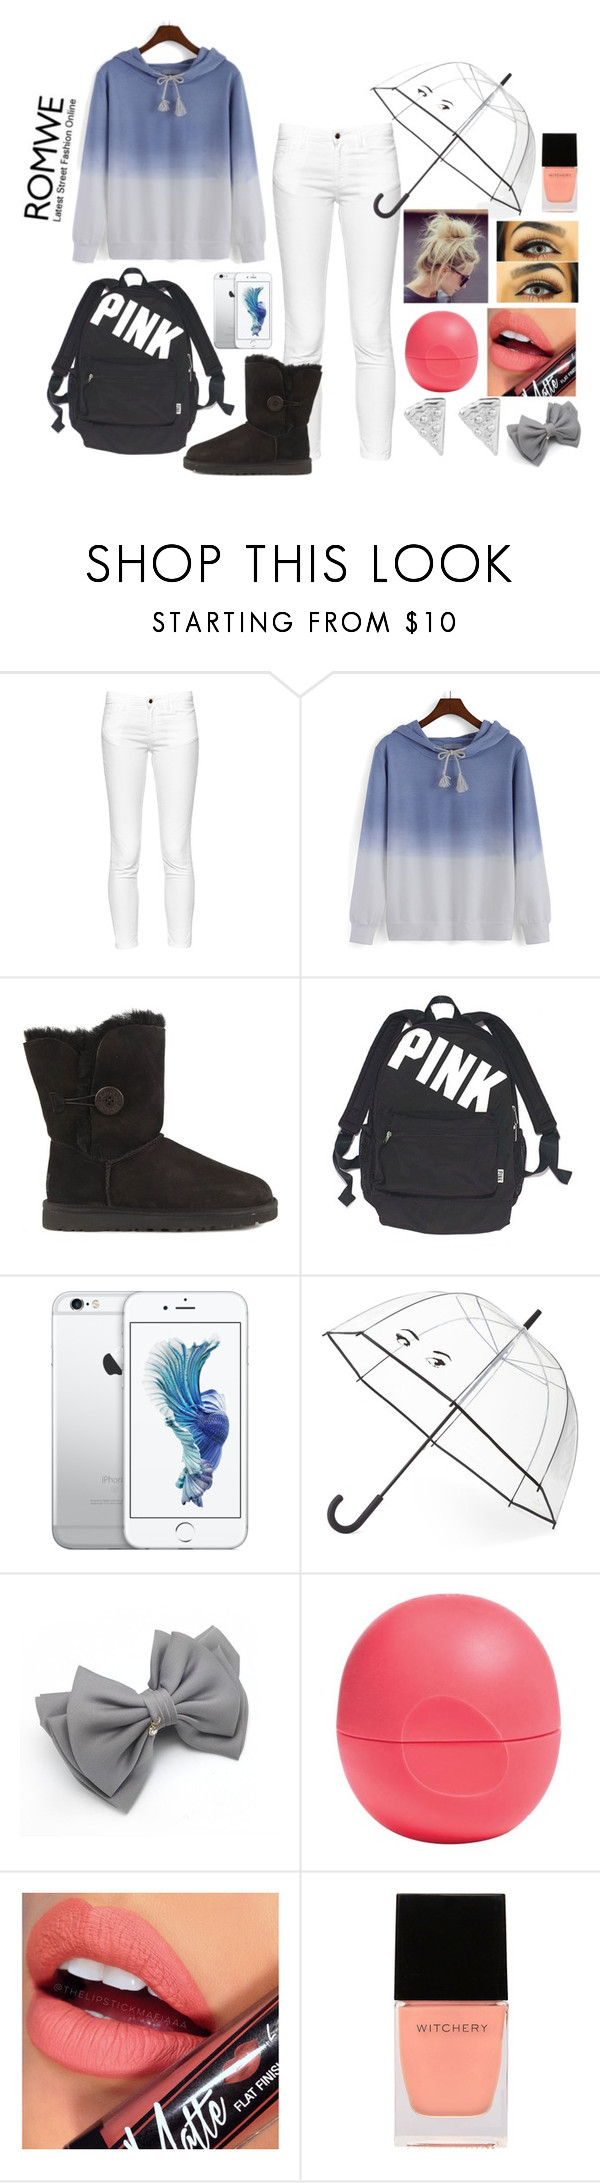 """lazy school day"" by melody02craig ❤ liked on Polyvore featuring French Connection, UGG Australia, Victoria's Secret, Kate Spade, Eos, Fiebiger, Witchery and Rock 'N Rose"